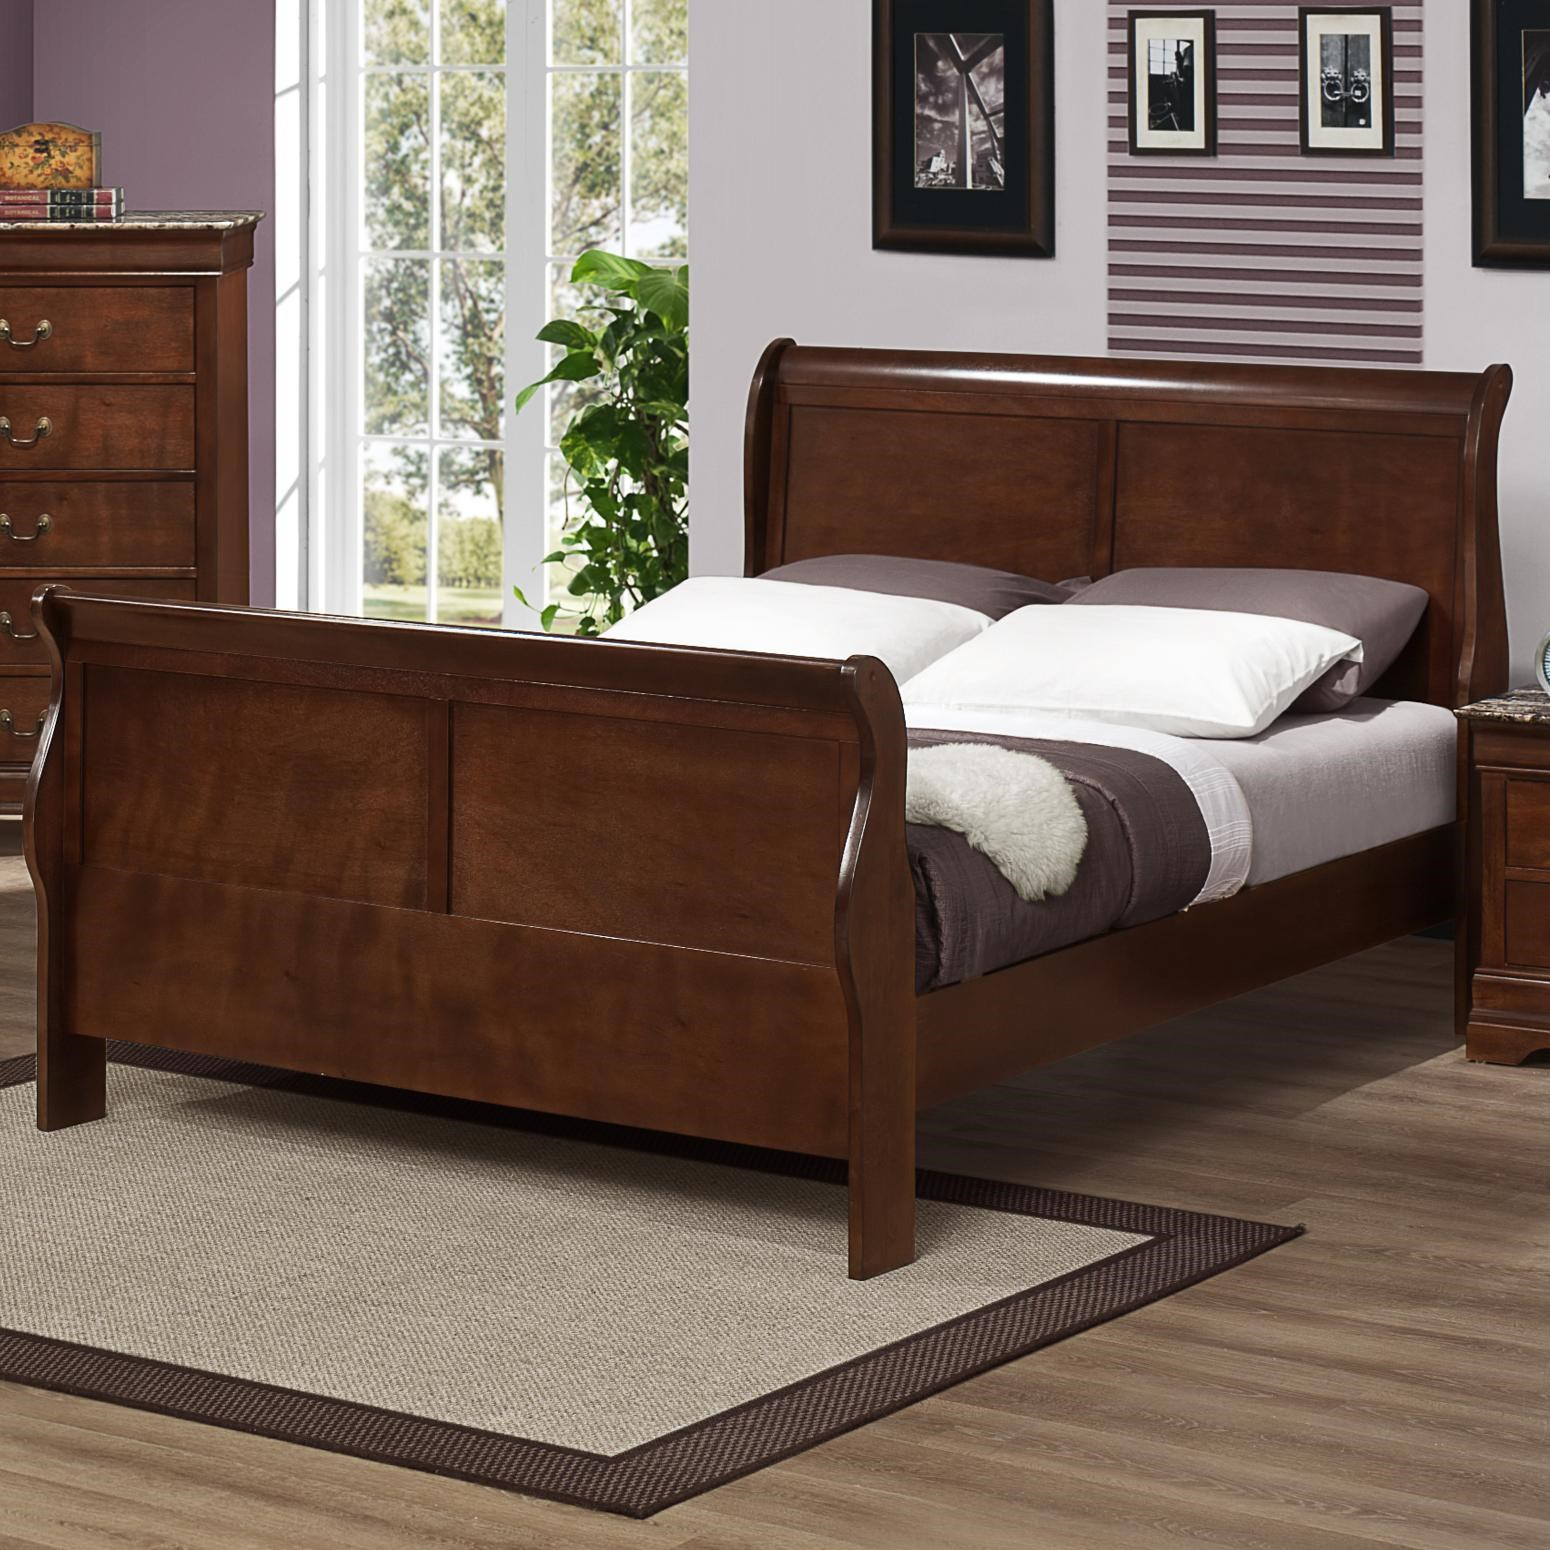 Home Bedroom Furniture Sleigh Beds Austin Group Marseille Queen Sleigh Bed.  Bed Shown May Not Represent Size Indicated